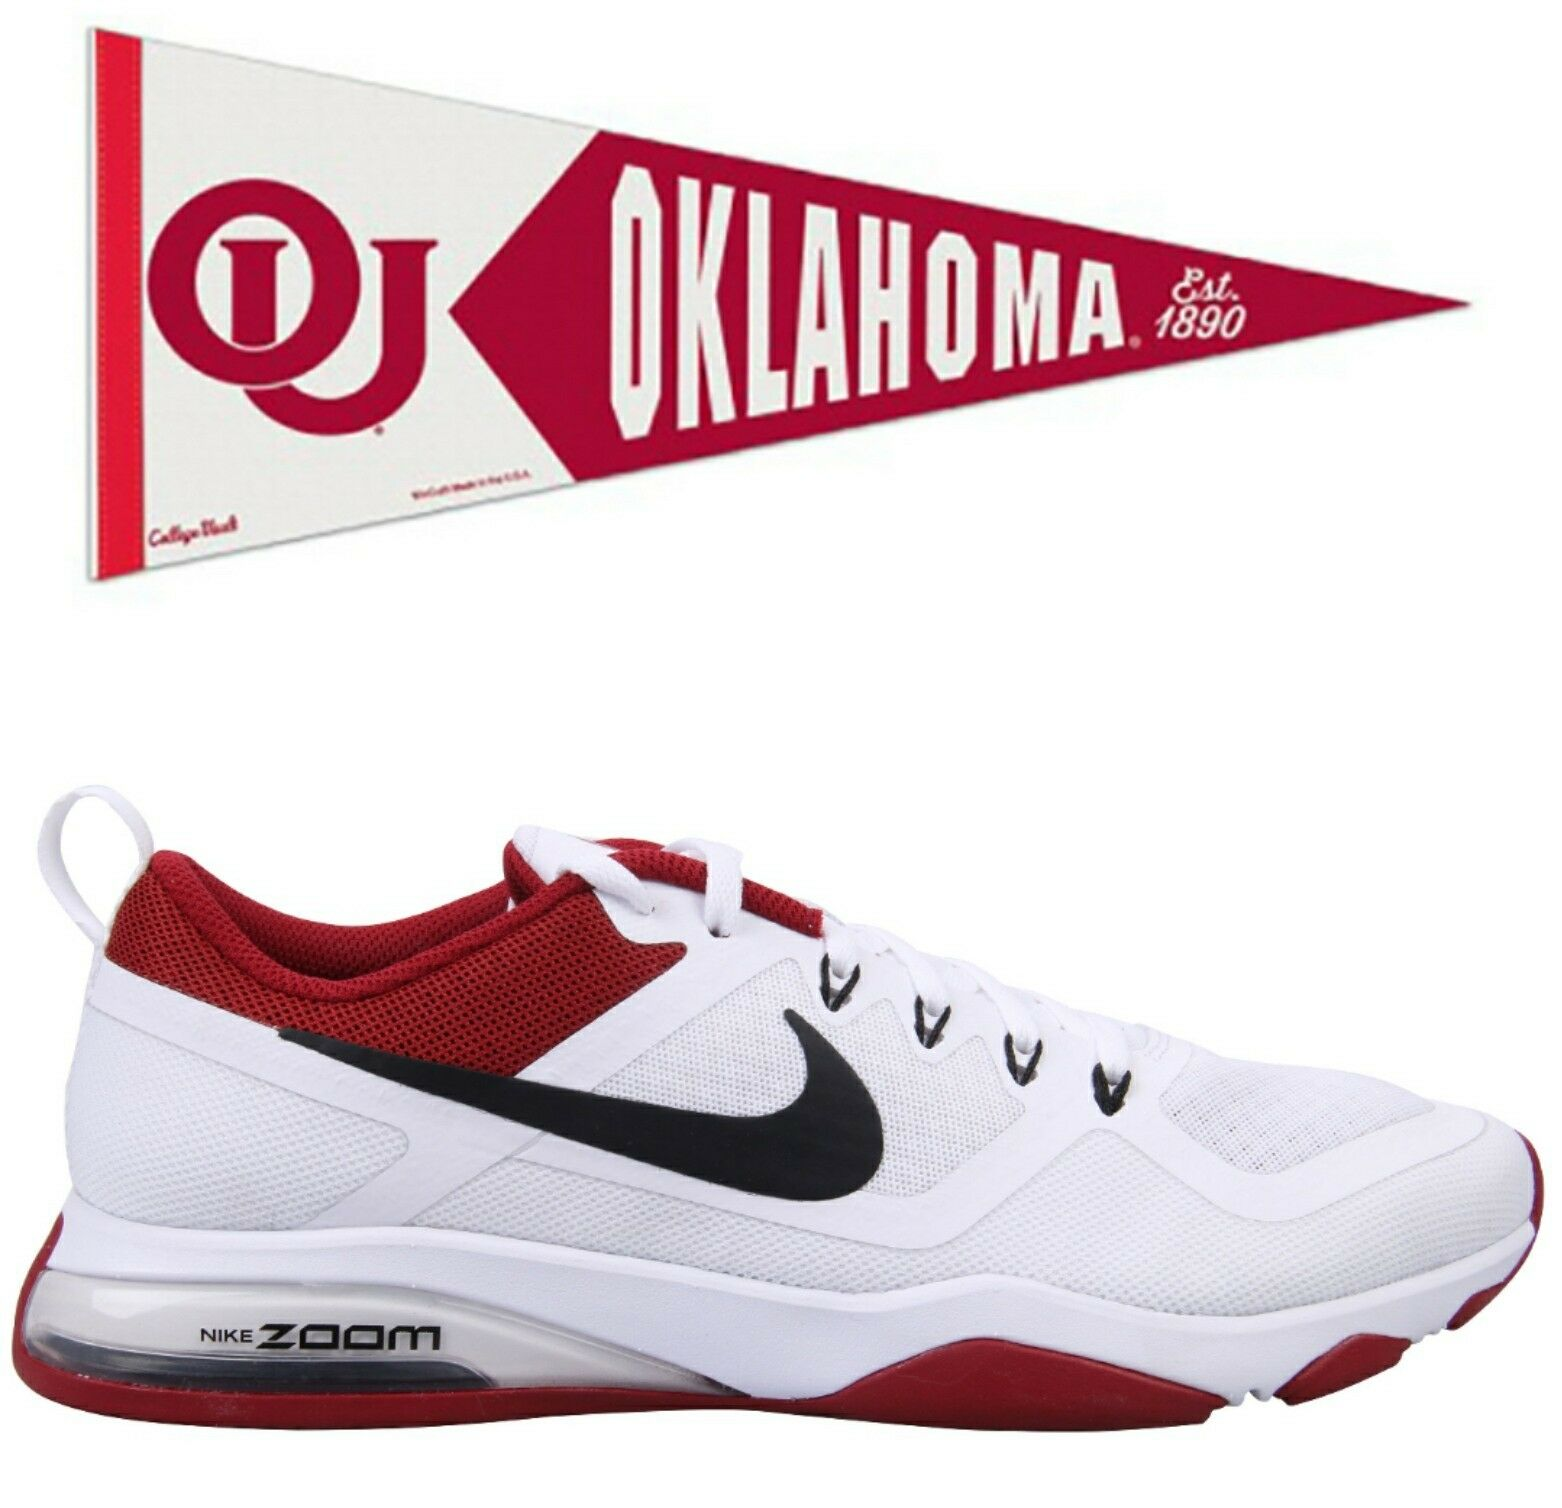 NEW Wmn's SZ 8.5, NIKE Air Zoom Fitness OU, Oklahoma Sooners Colors. 905897-106